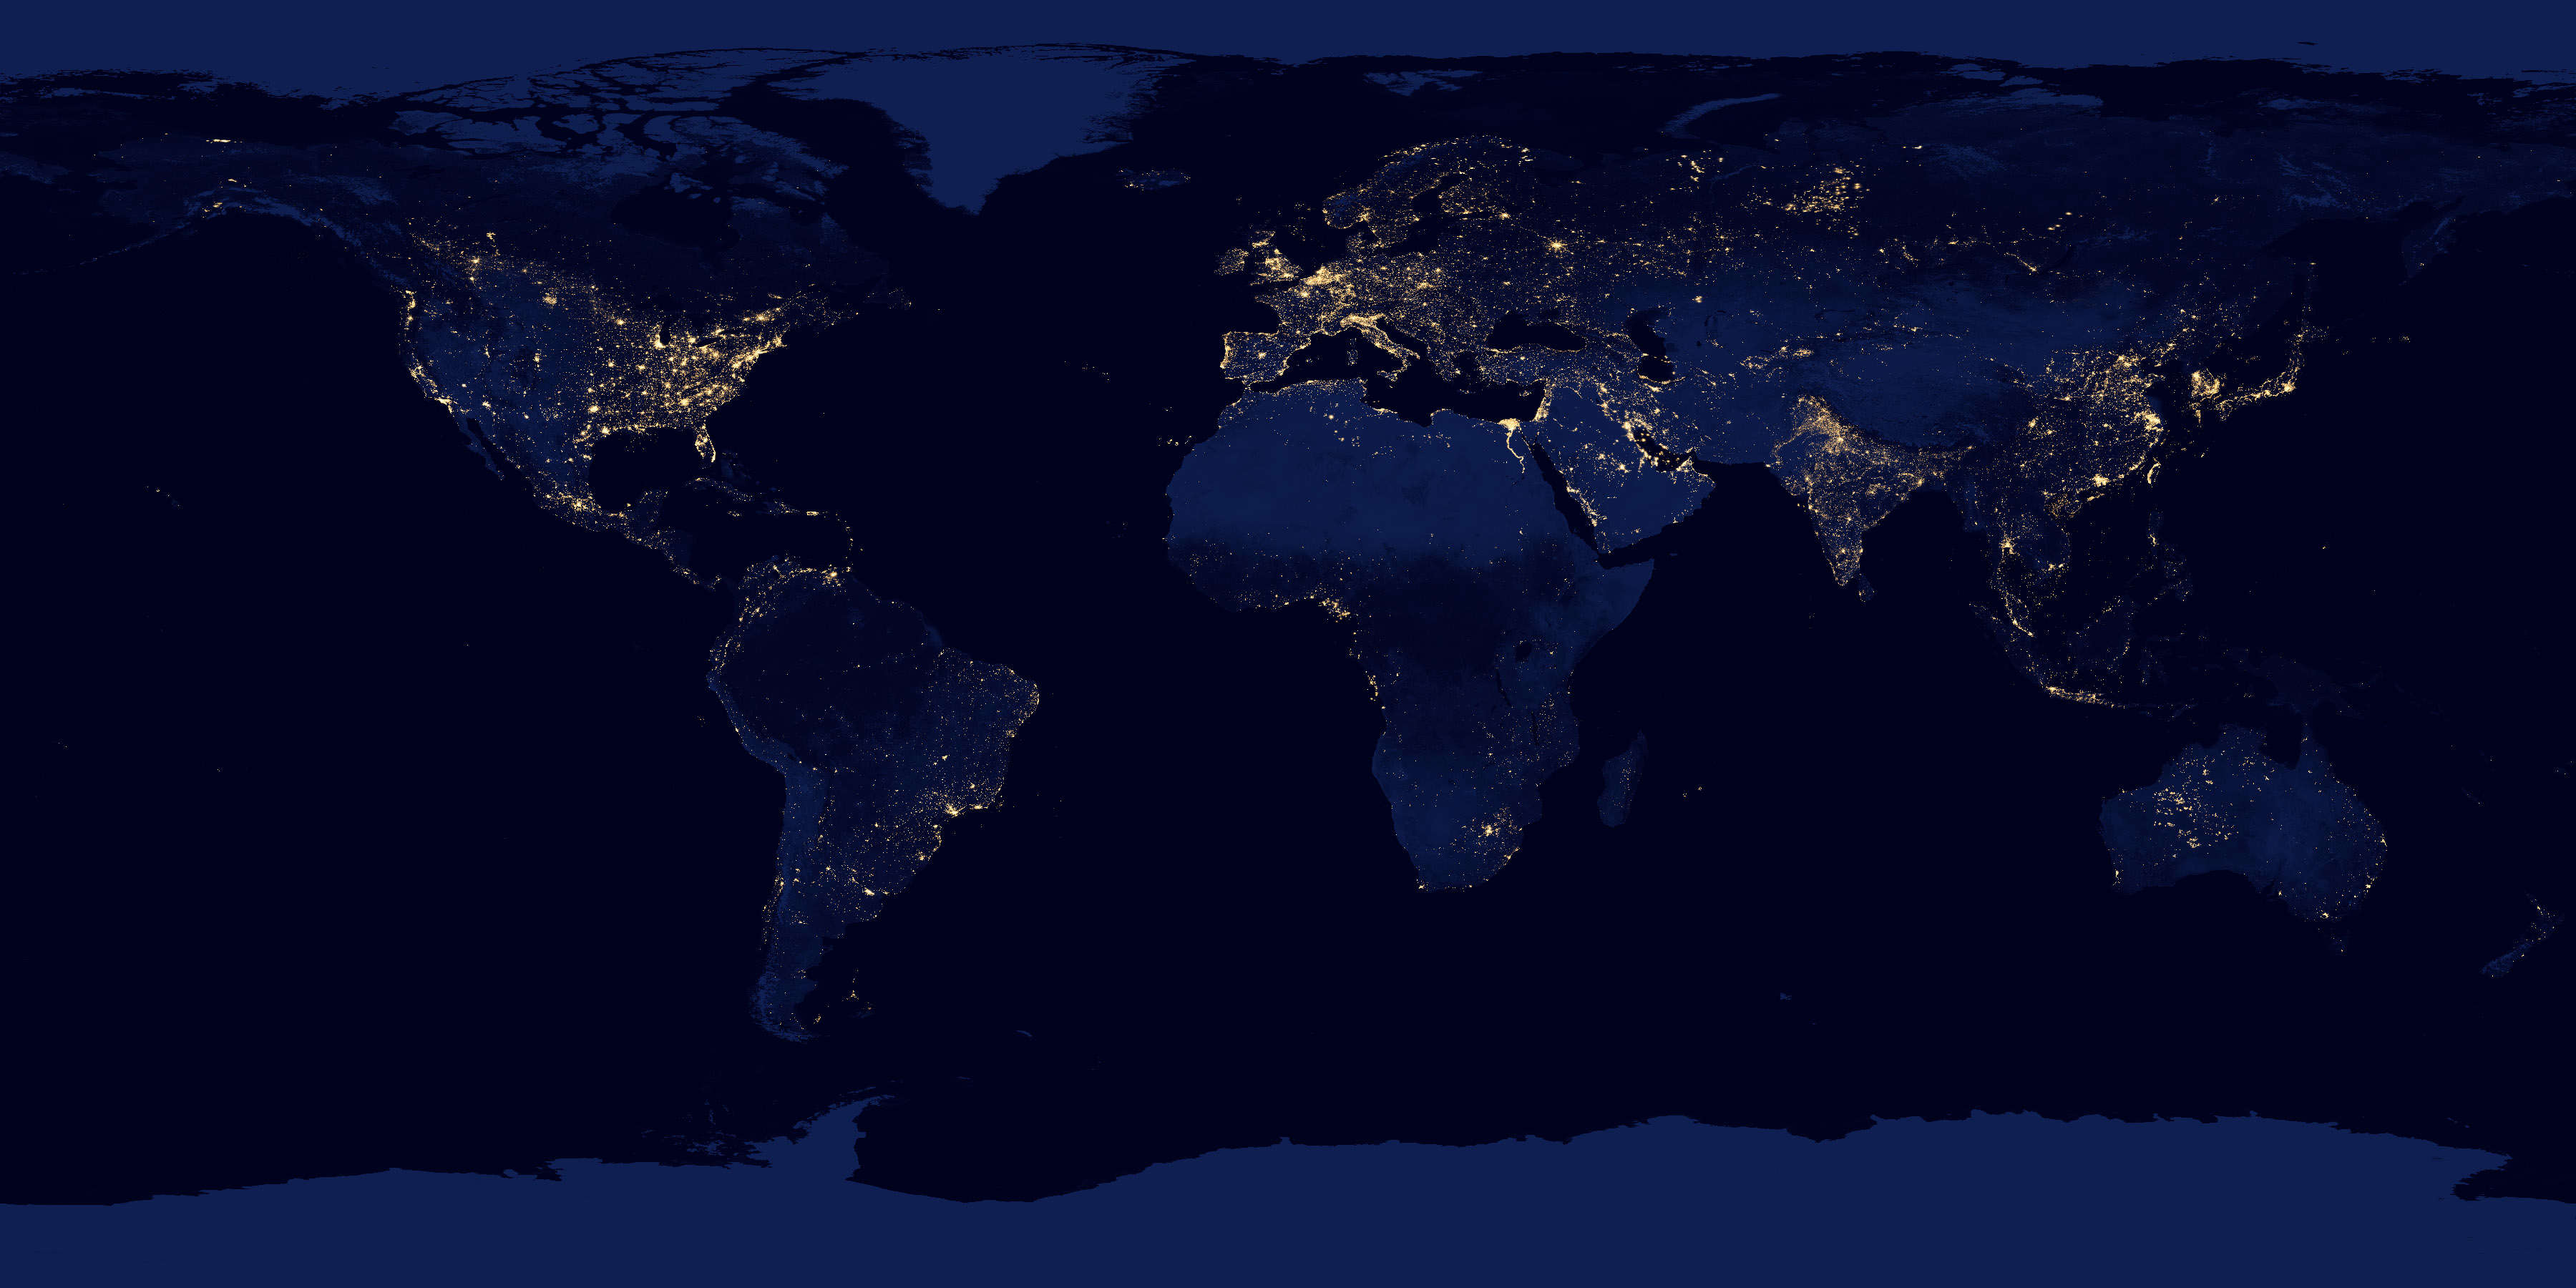 In December 2012, NASA and NOAA released the most detailed